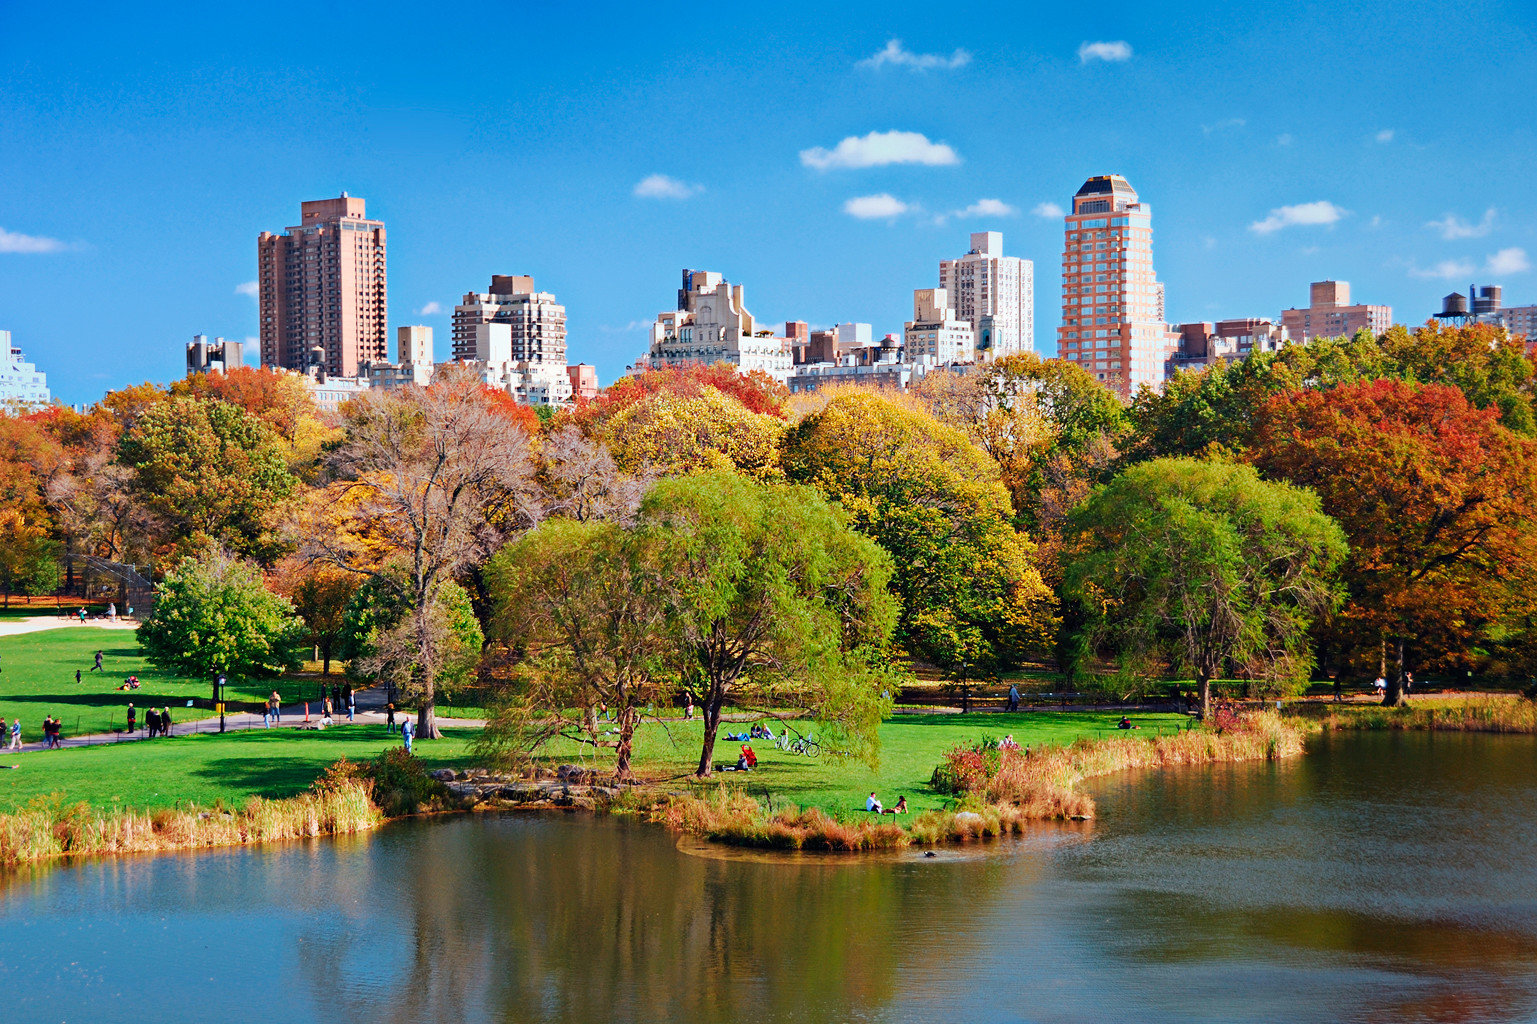 City Classic Lake Nature Parks Scenic views water tree River sky skyline plant park flower season pond woody plant cityscape autumn surrounded